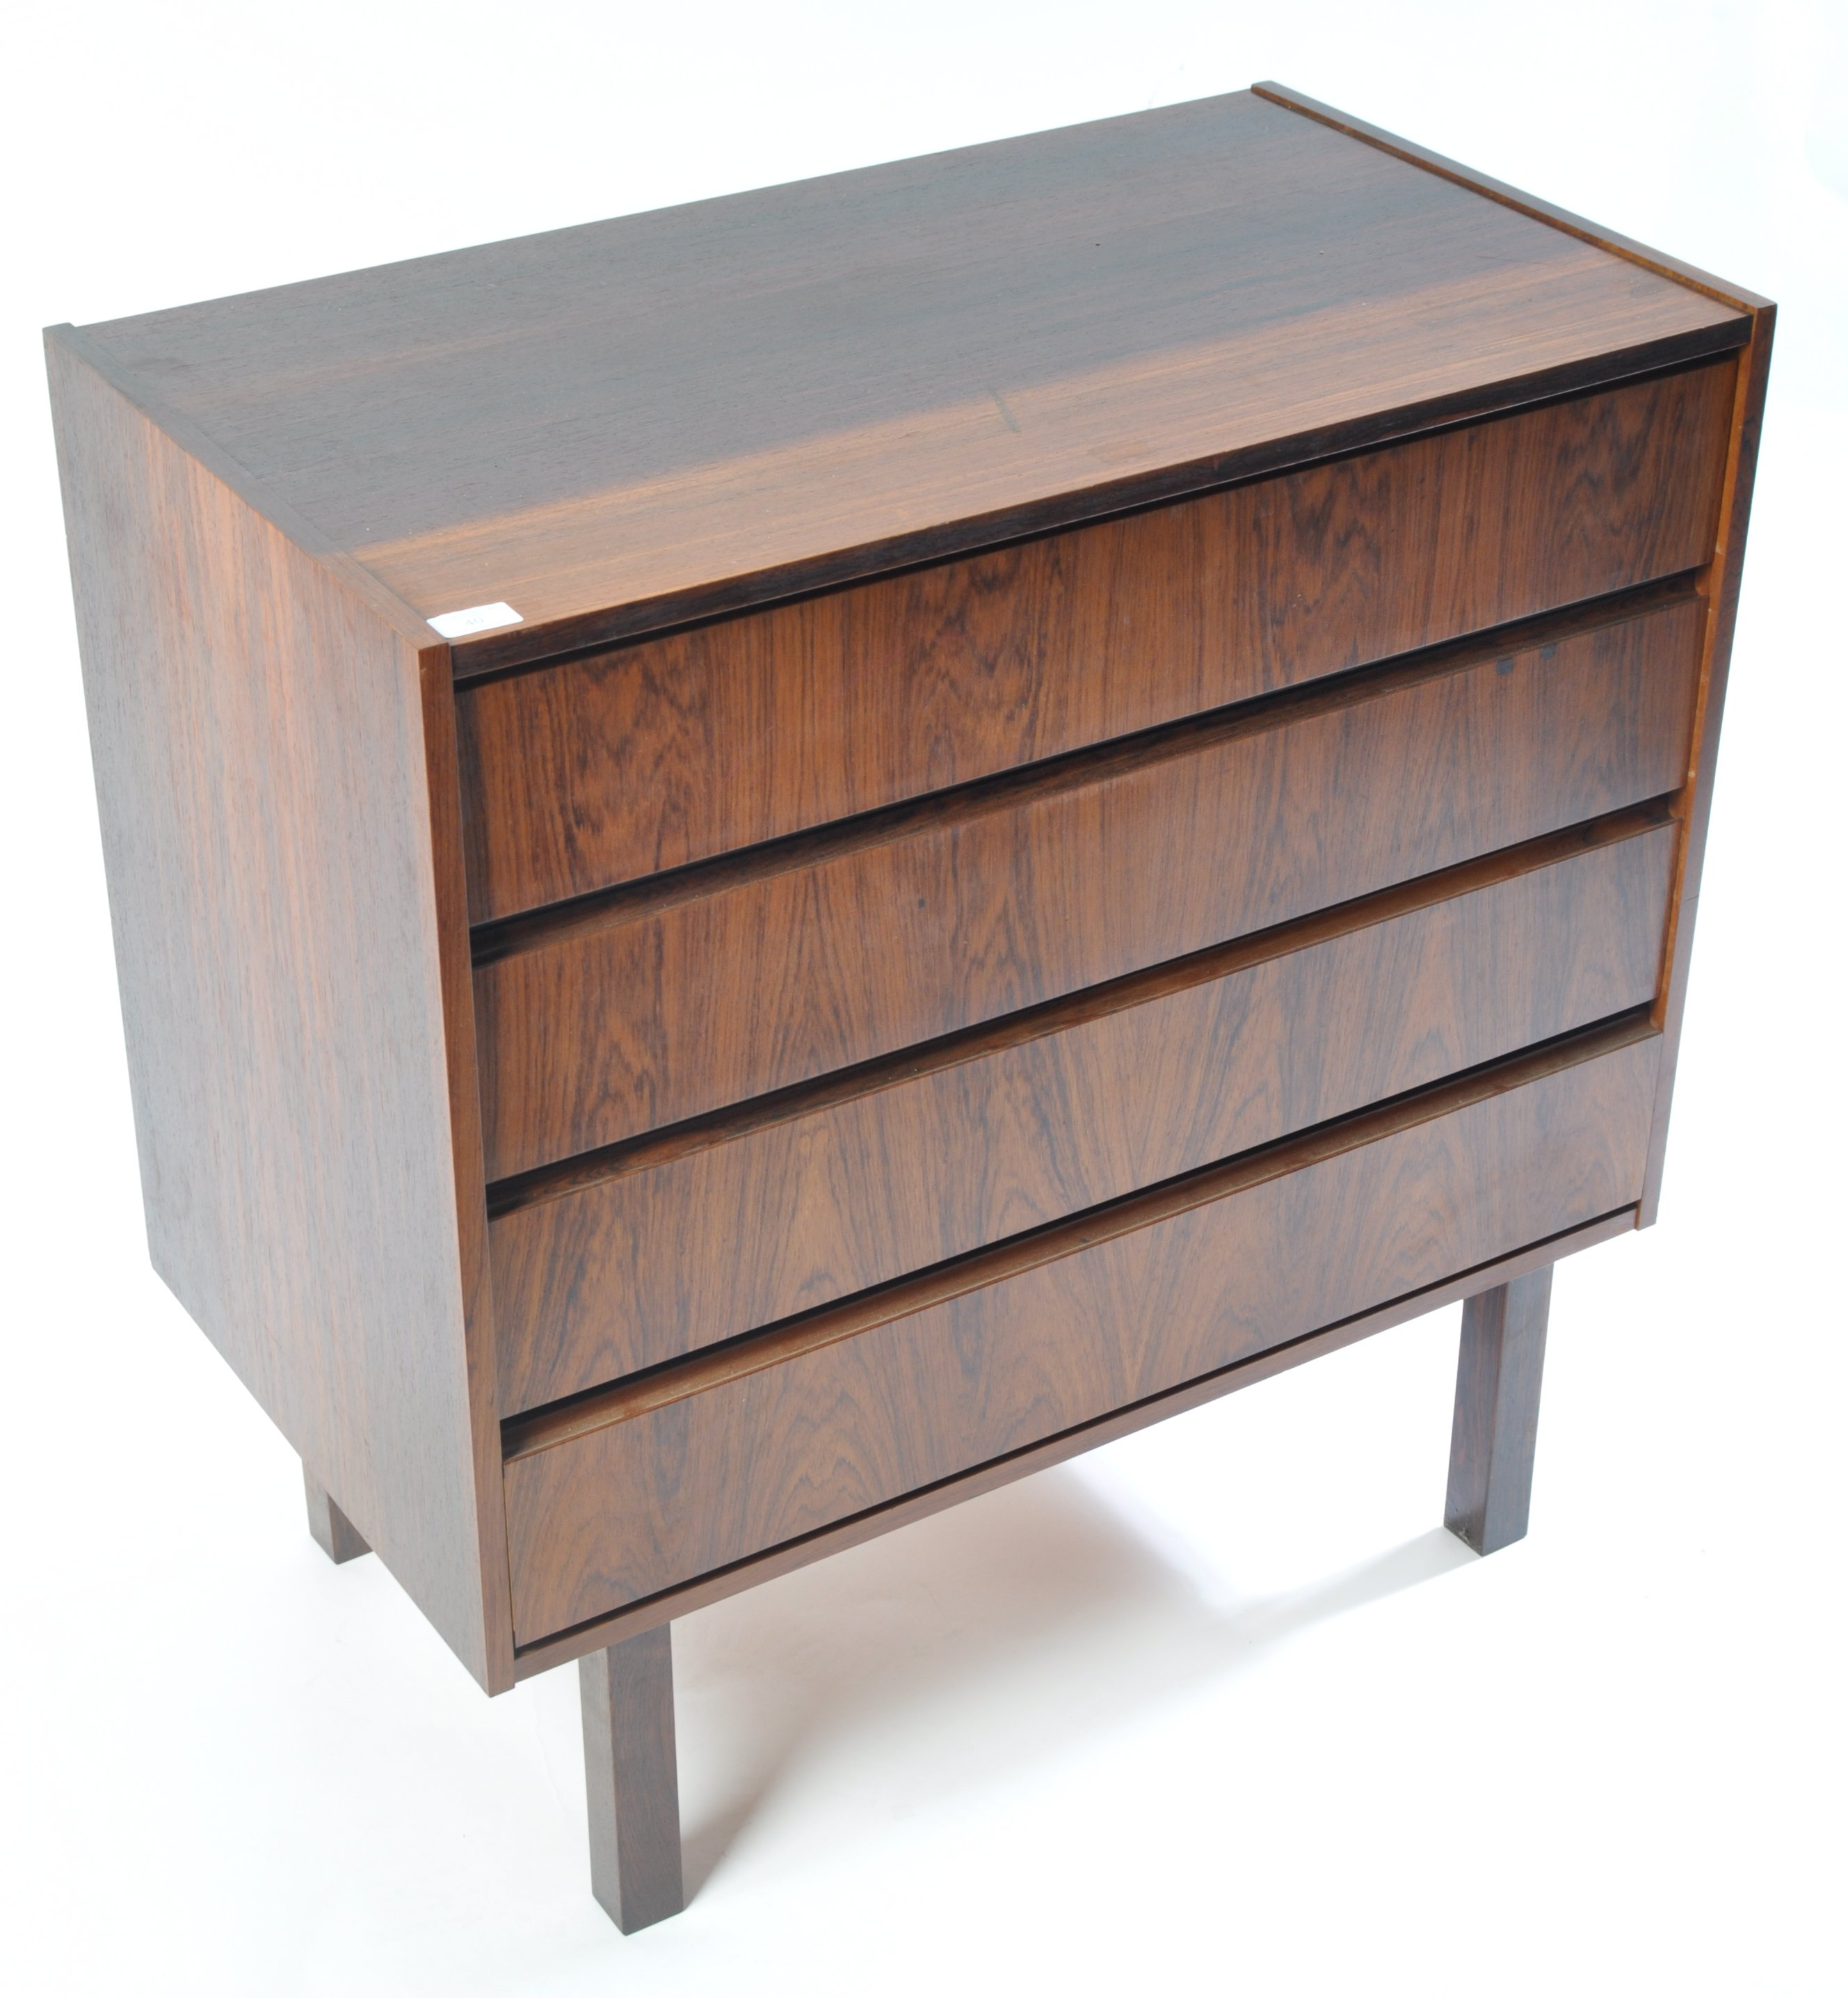 Lot 40 - DANISH INSPIRED RETRO VINTAGE CHEST OF FOUR DRAWERS